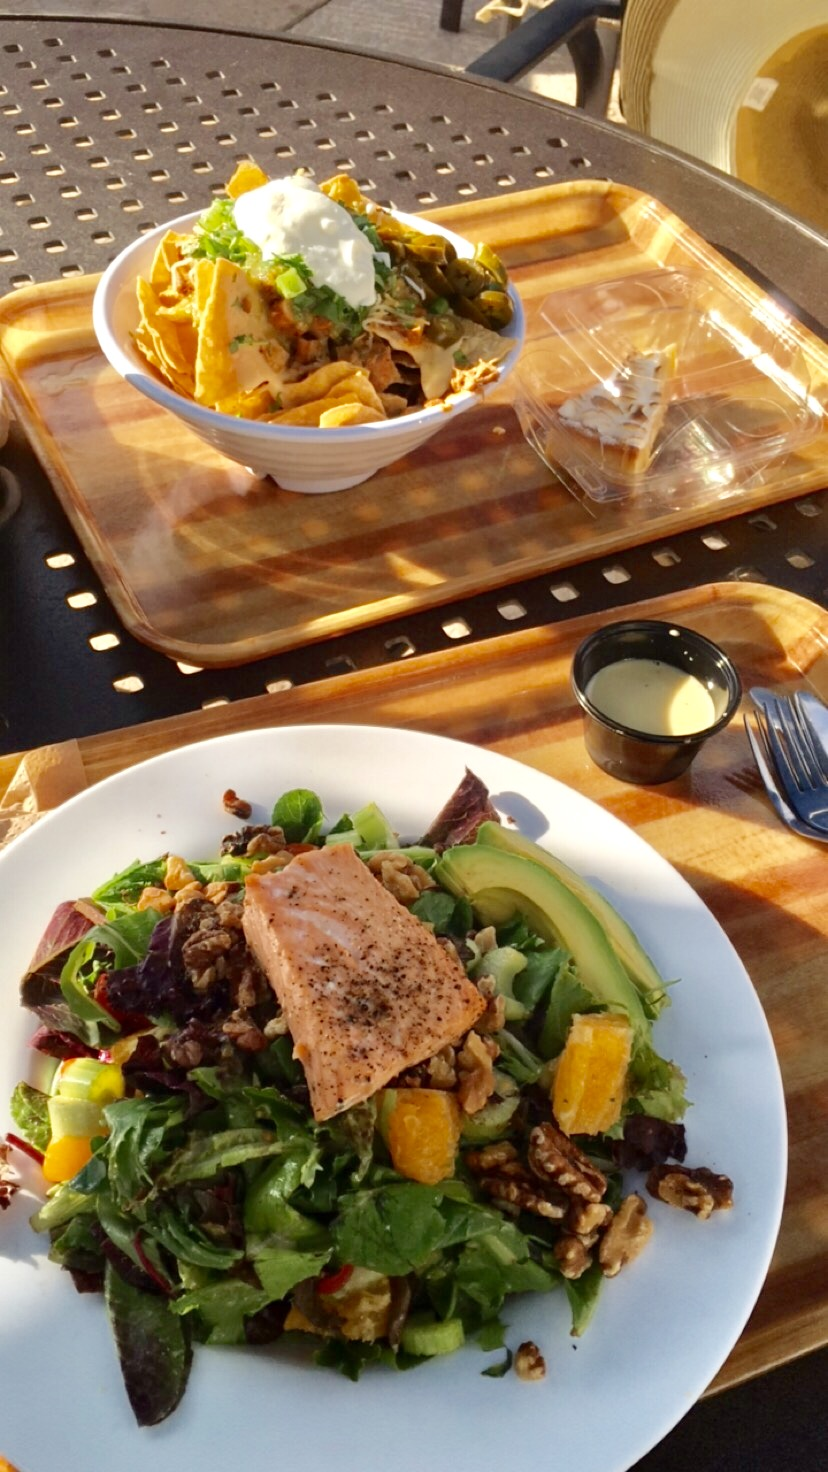 Glen Ivy Kitchen - There is a restaurant that serves yummy food and healthy options if you want to grab a bite. We ordered nachos and a wild salmon salad as a late lunch, and also treated ourselves with some indulgent desserts!